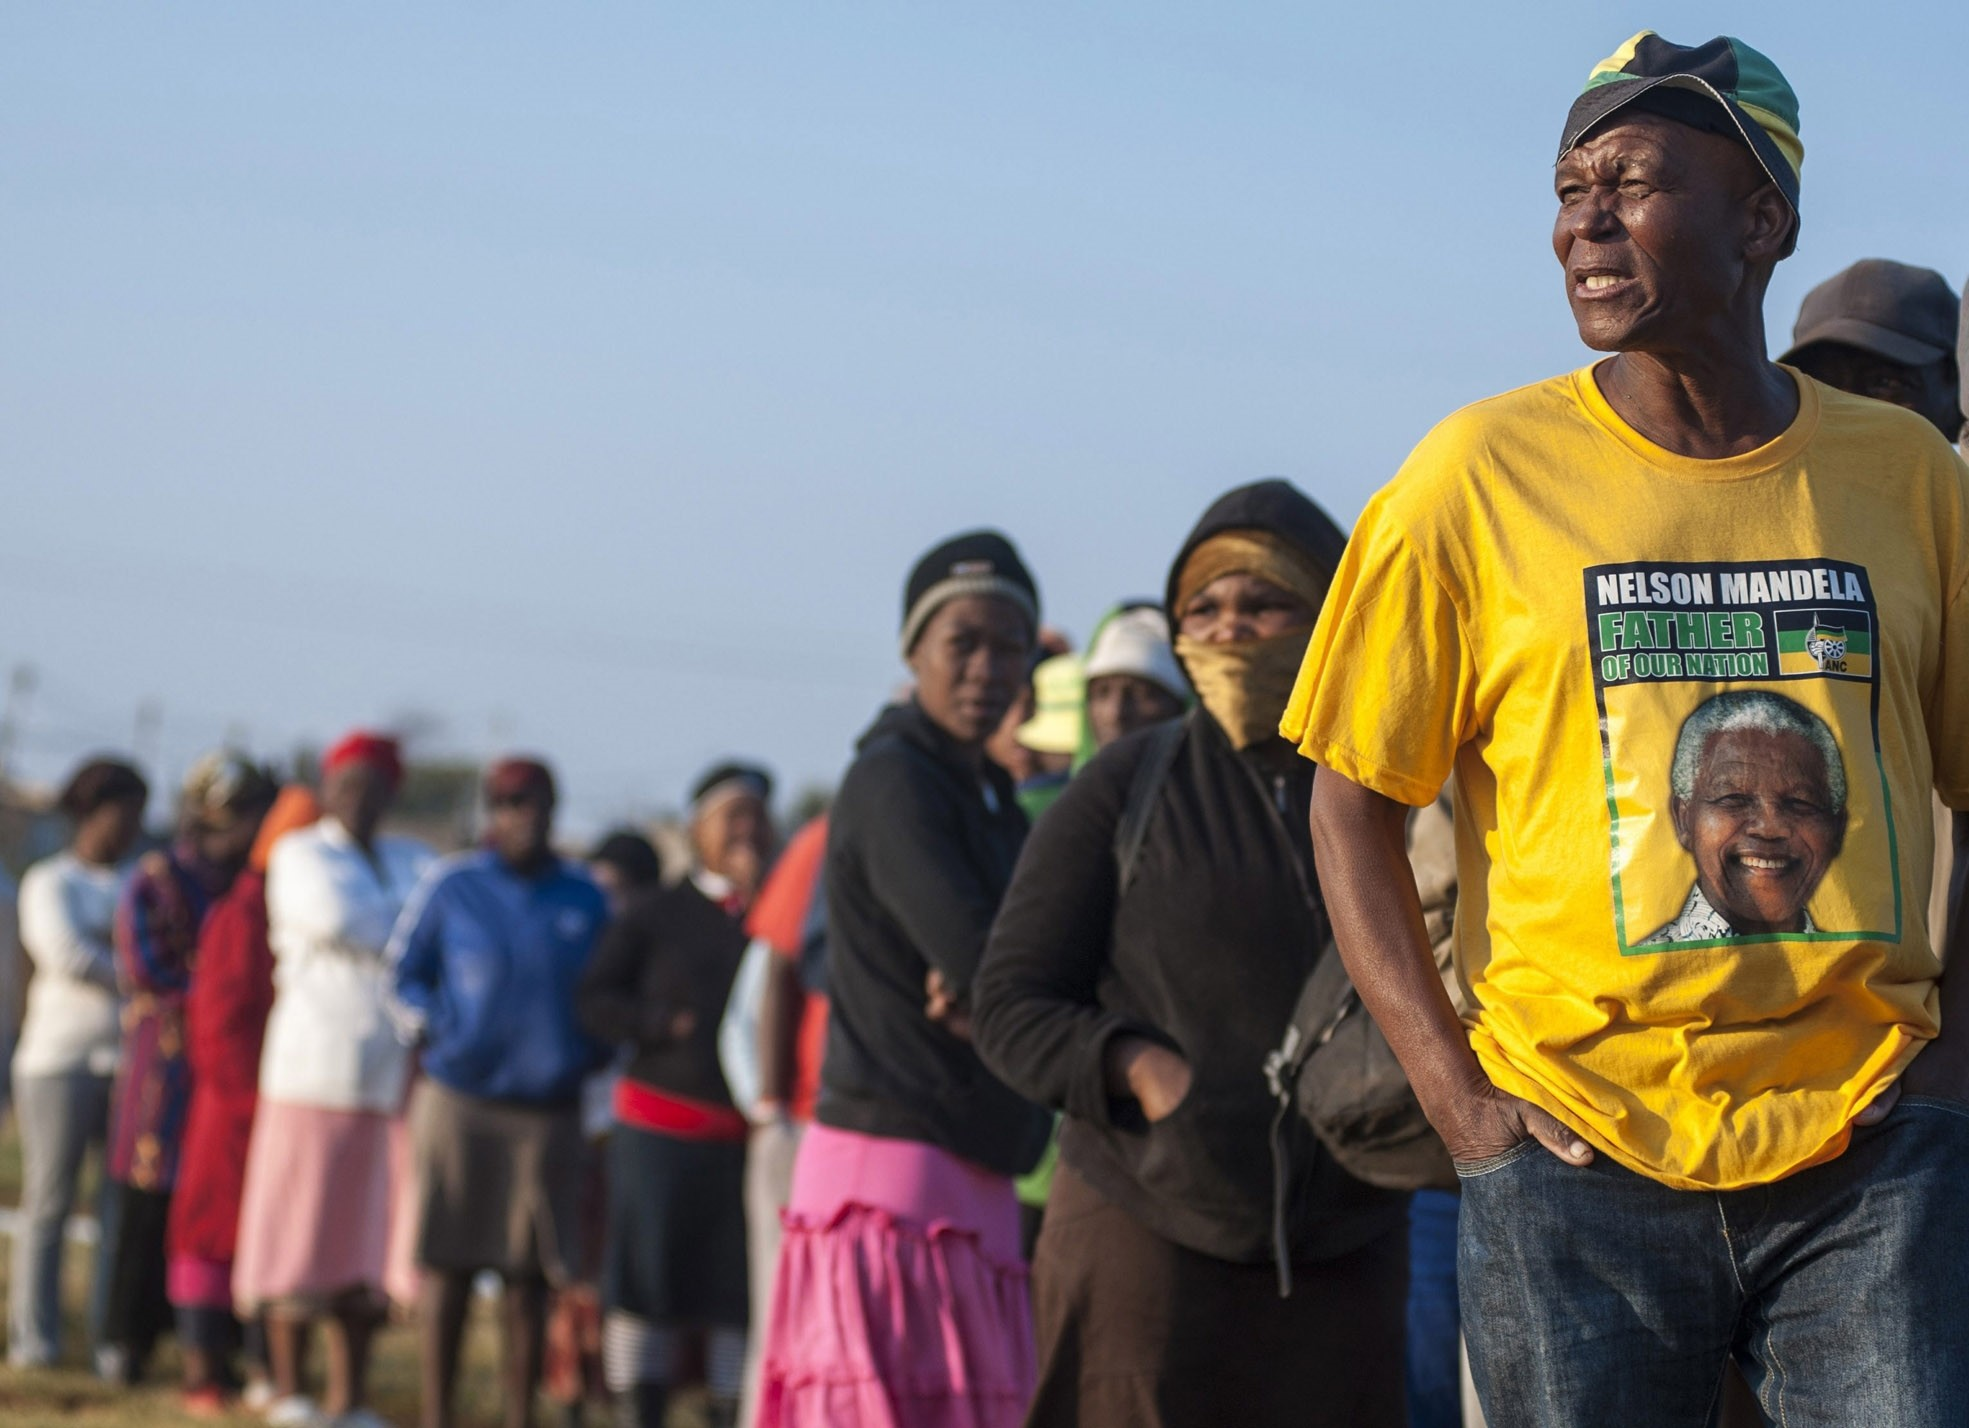 A supporter of the African National Congress (ANC) wears a t-shirt depicting late South African president Nelson Mandela.